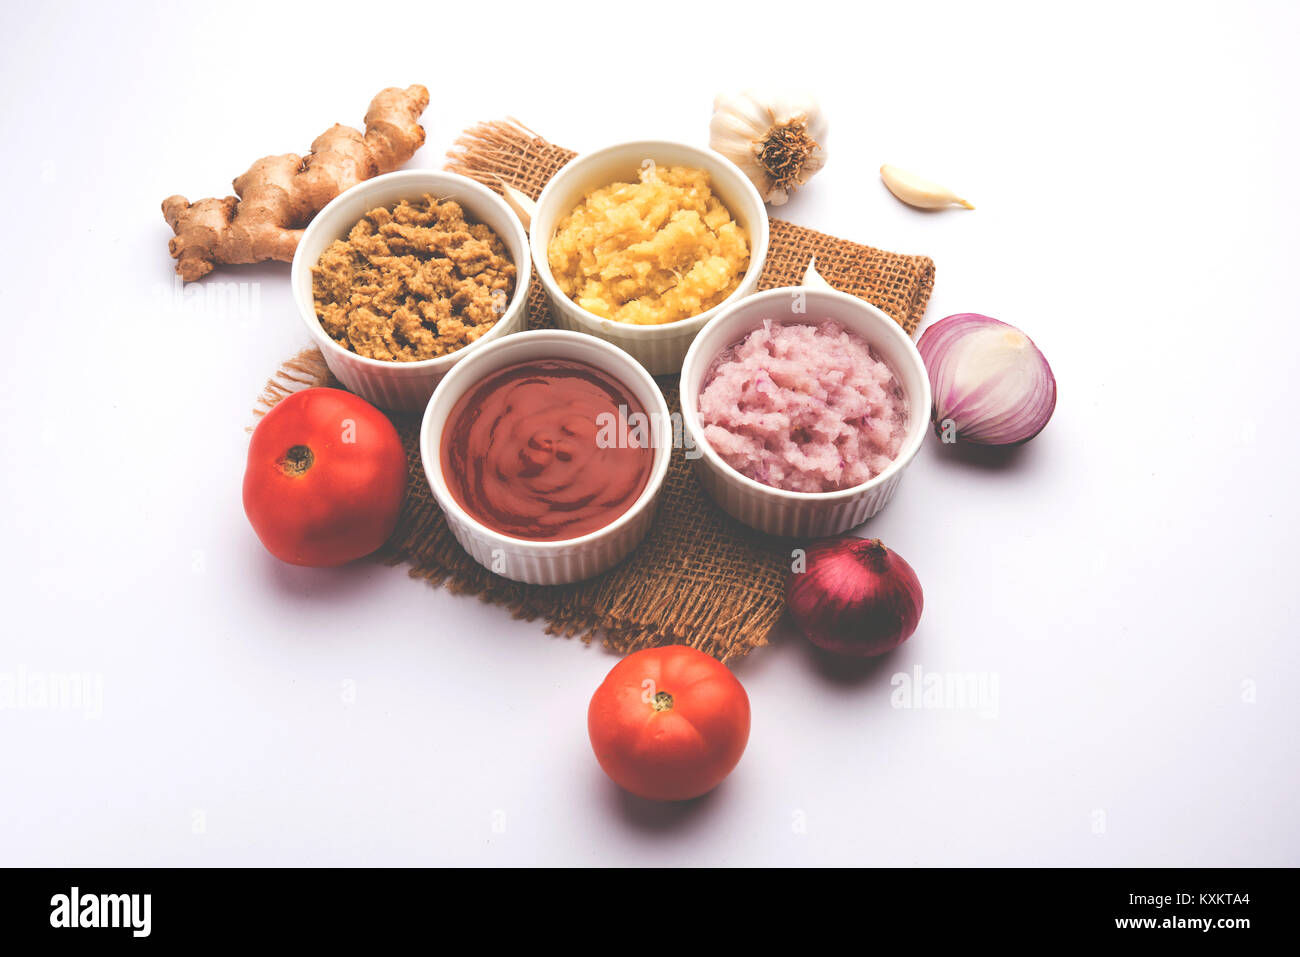 Ginger,  Garlic, onion and tomato paste or Sauce. Basic Indian food ingredients. Selective focus - Stock Image